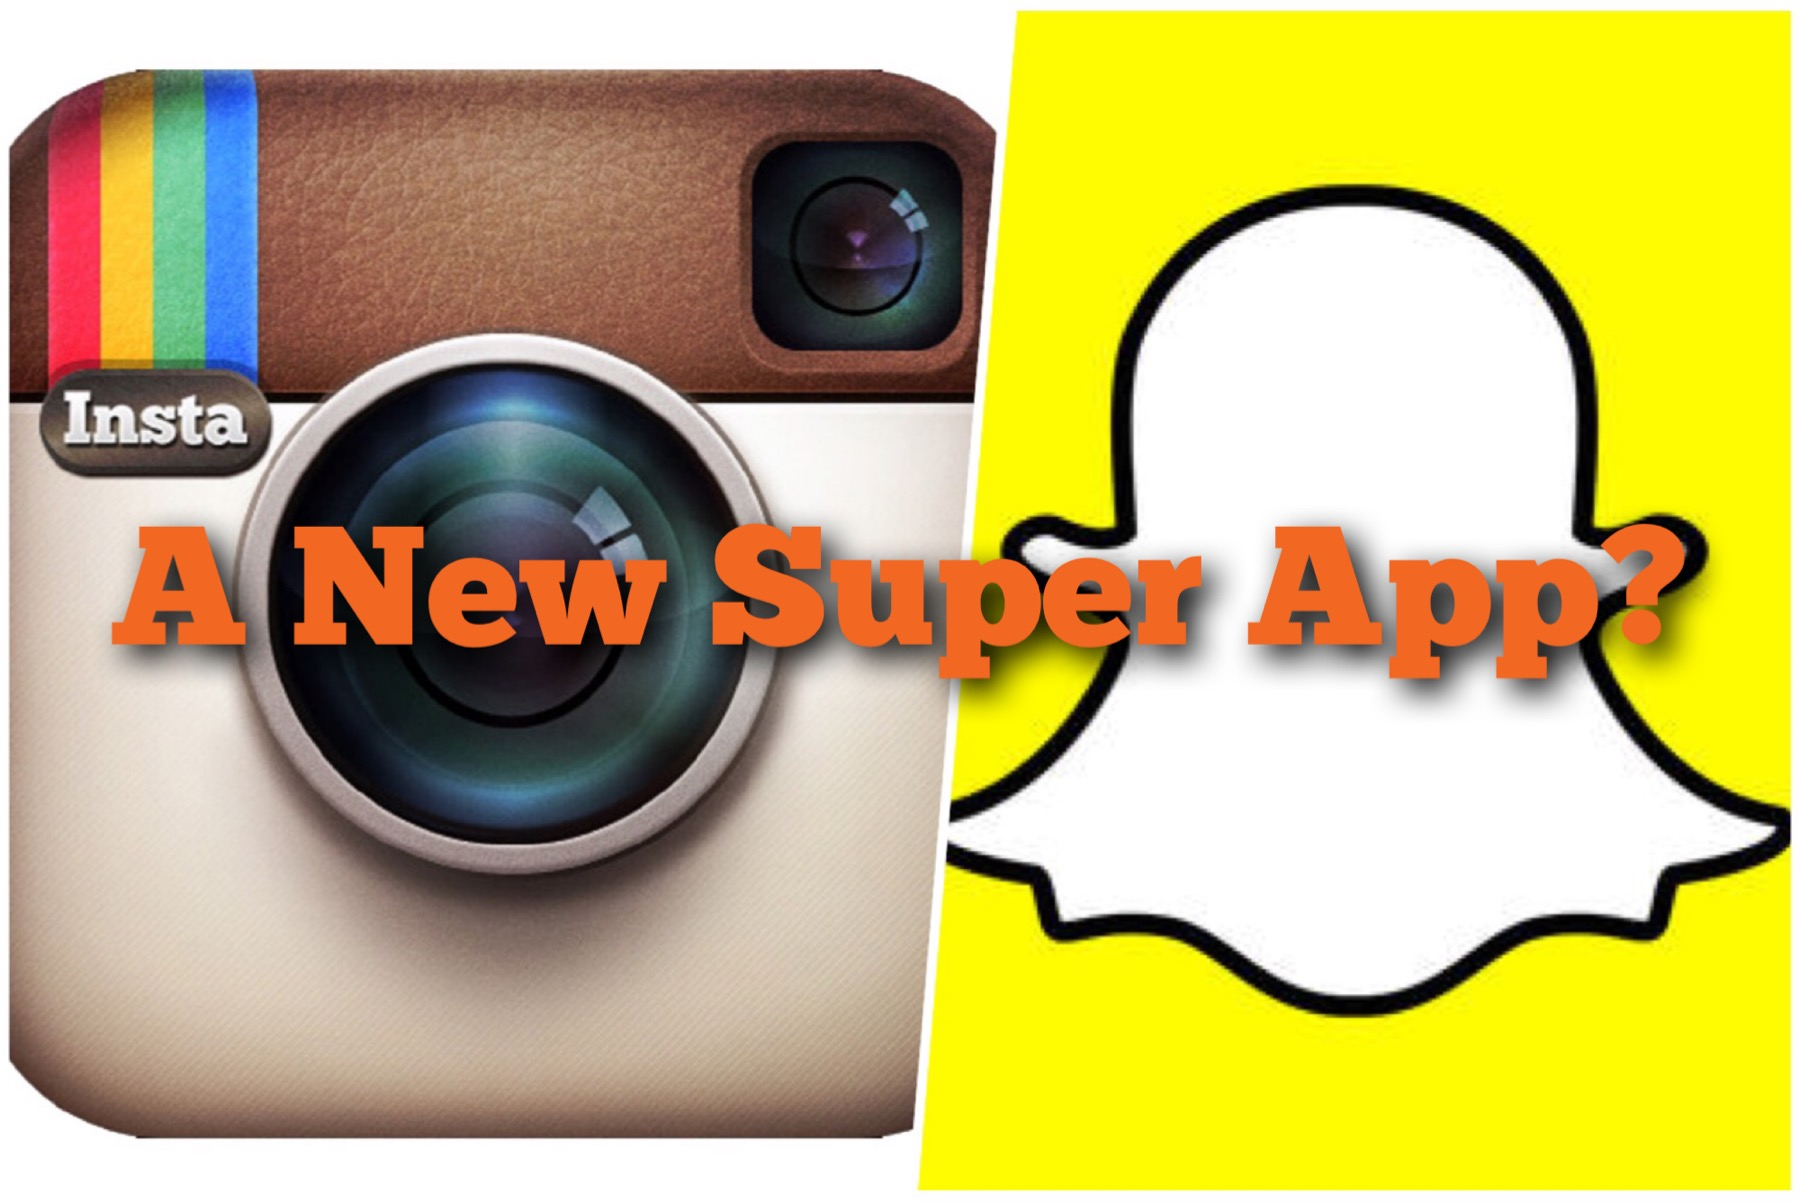 Instagram and Snapchat super app